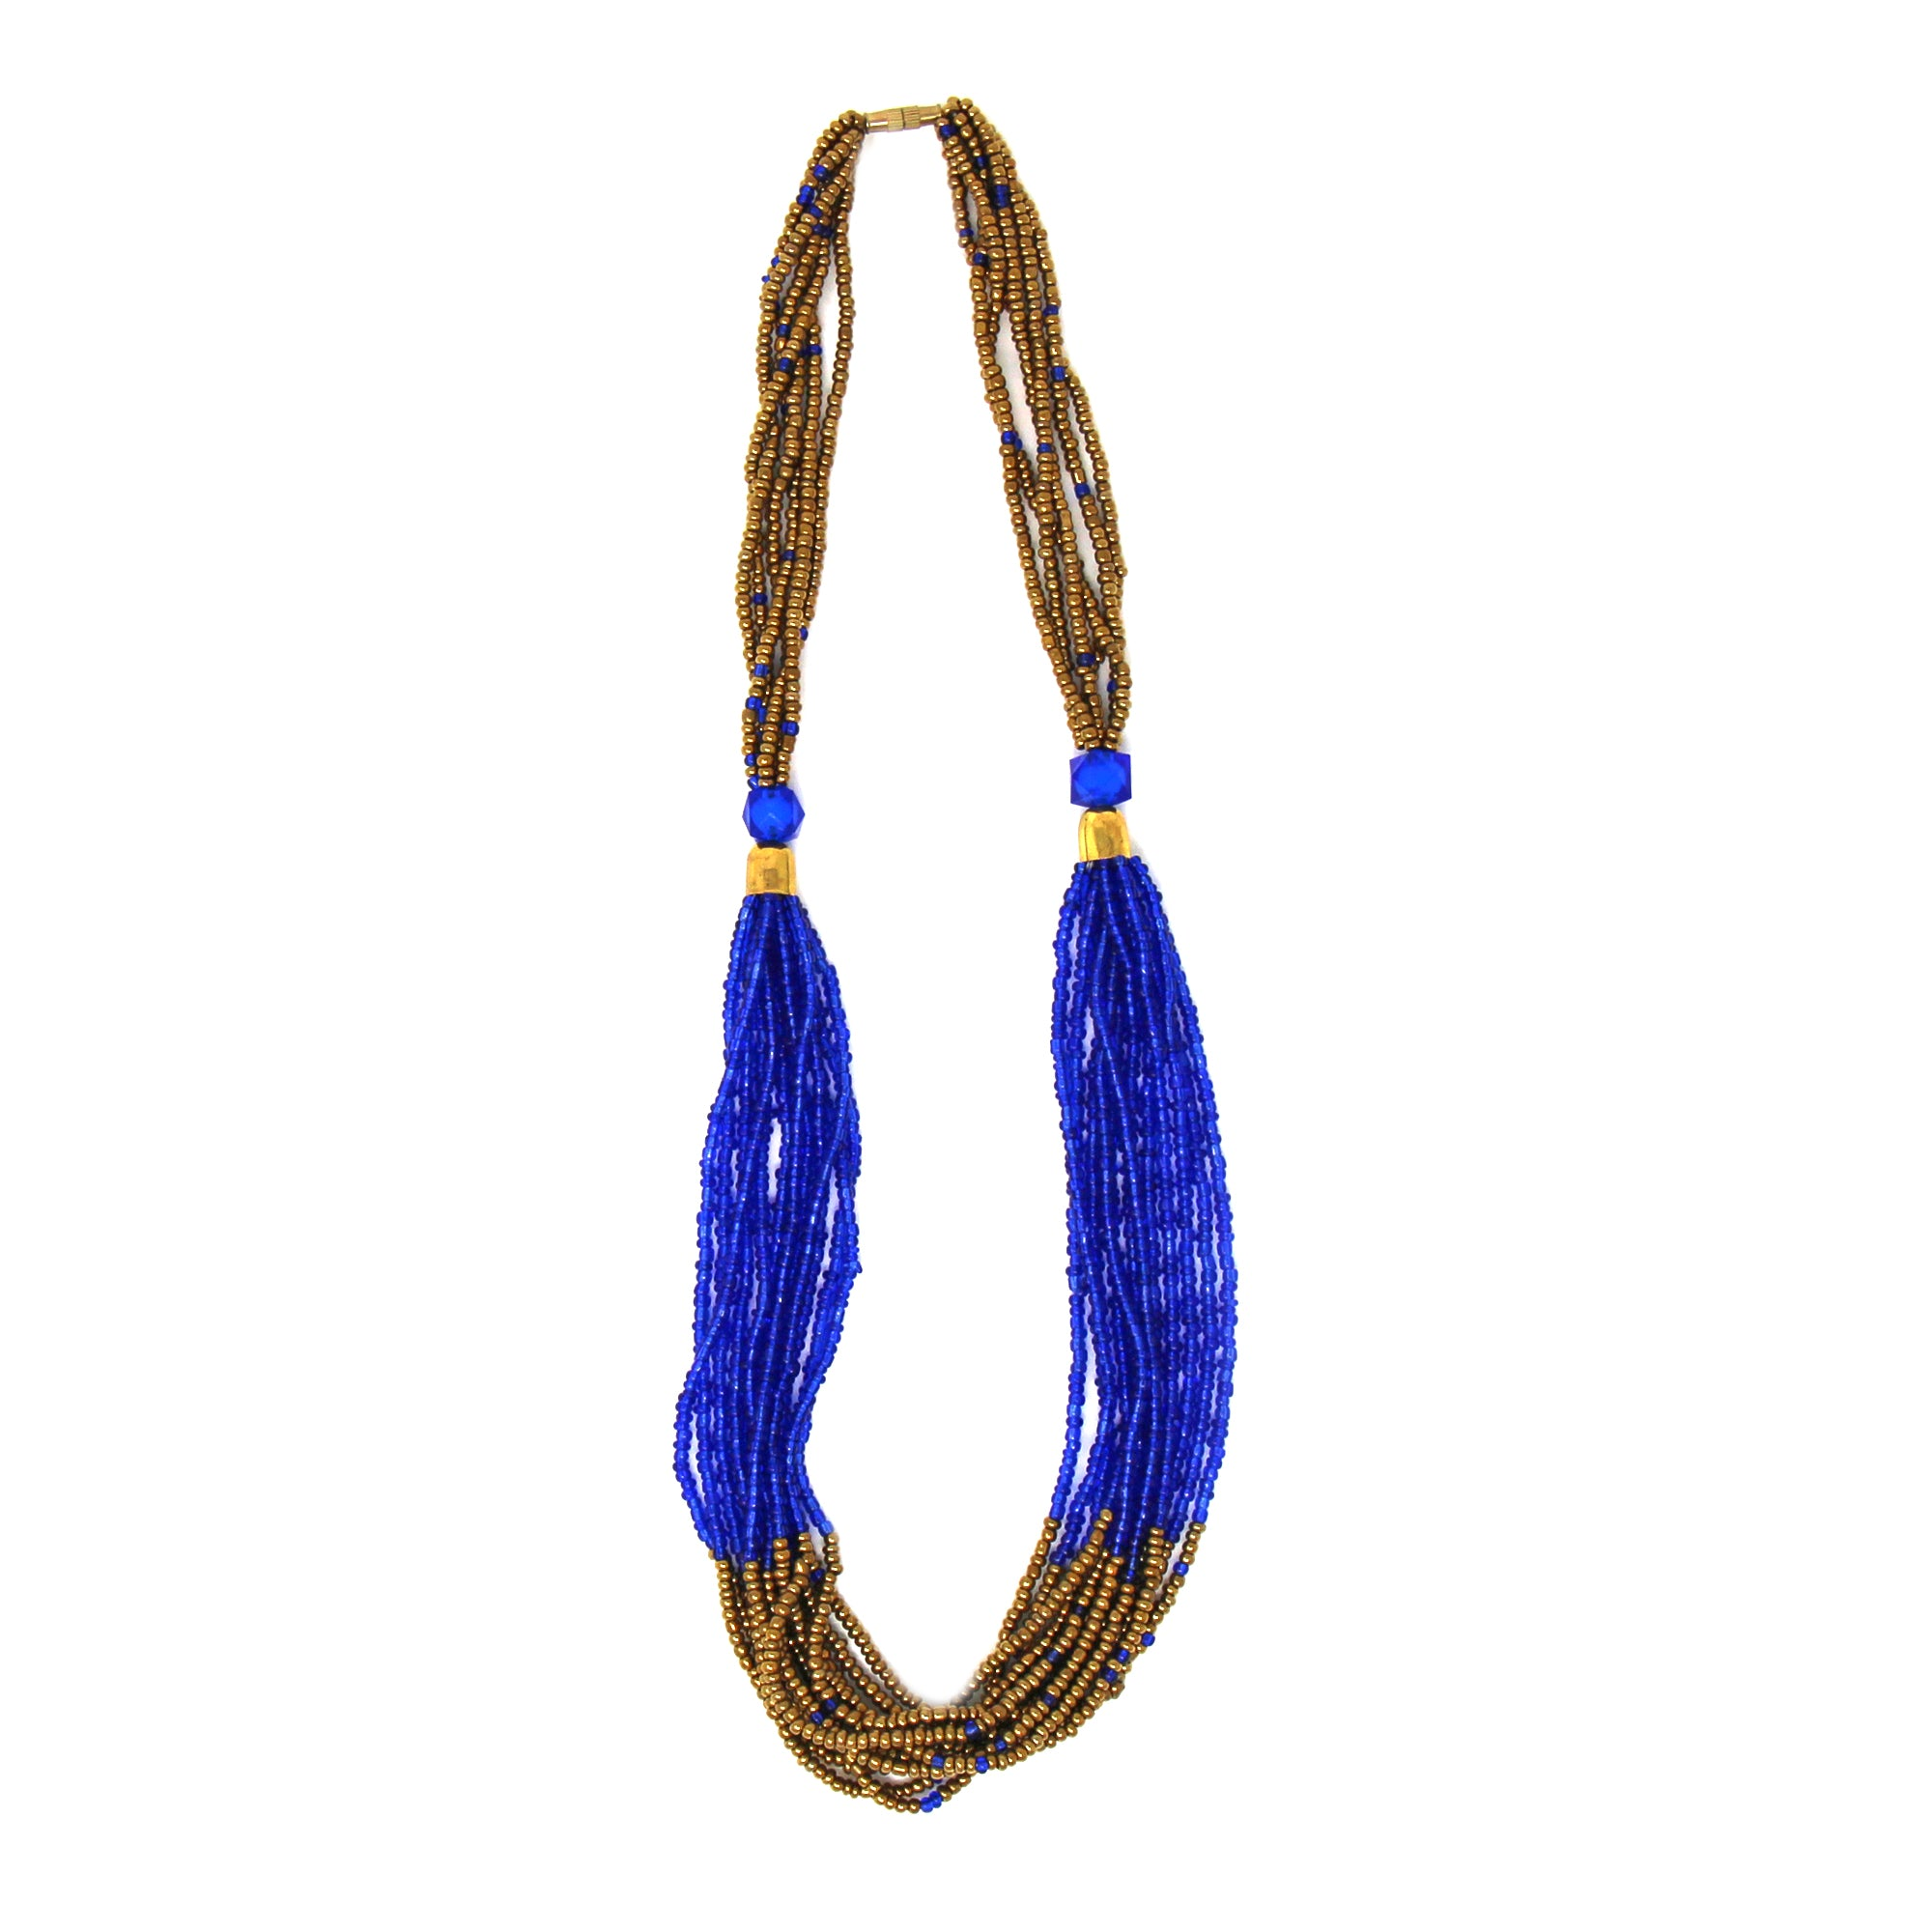 Multistrand Maasai Bead Necklace, Lapis Blue and Gold